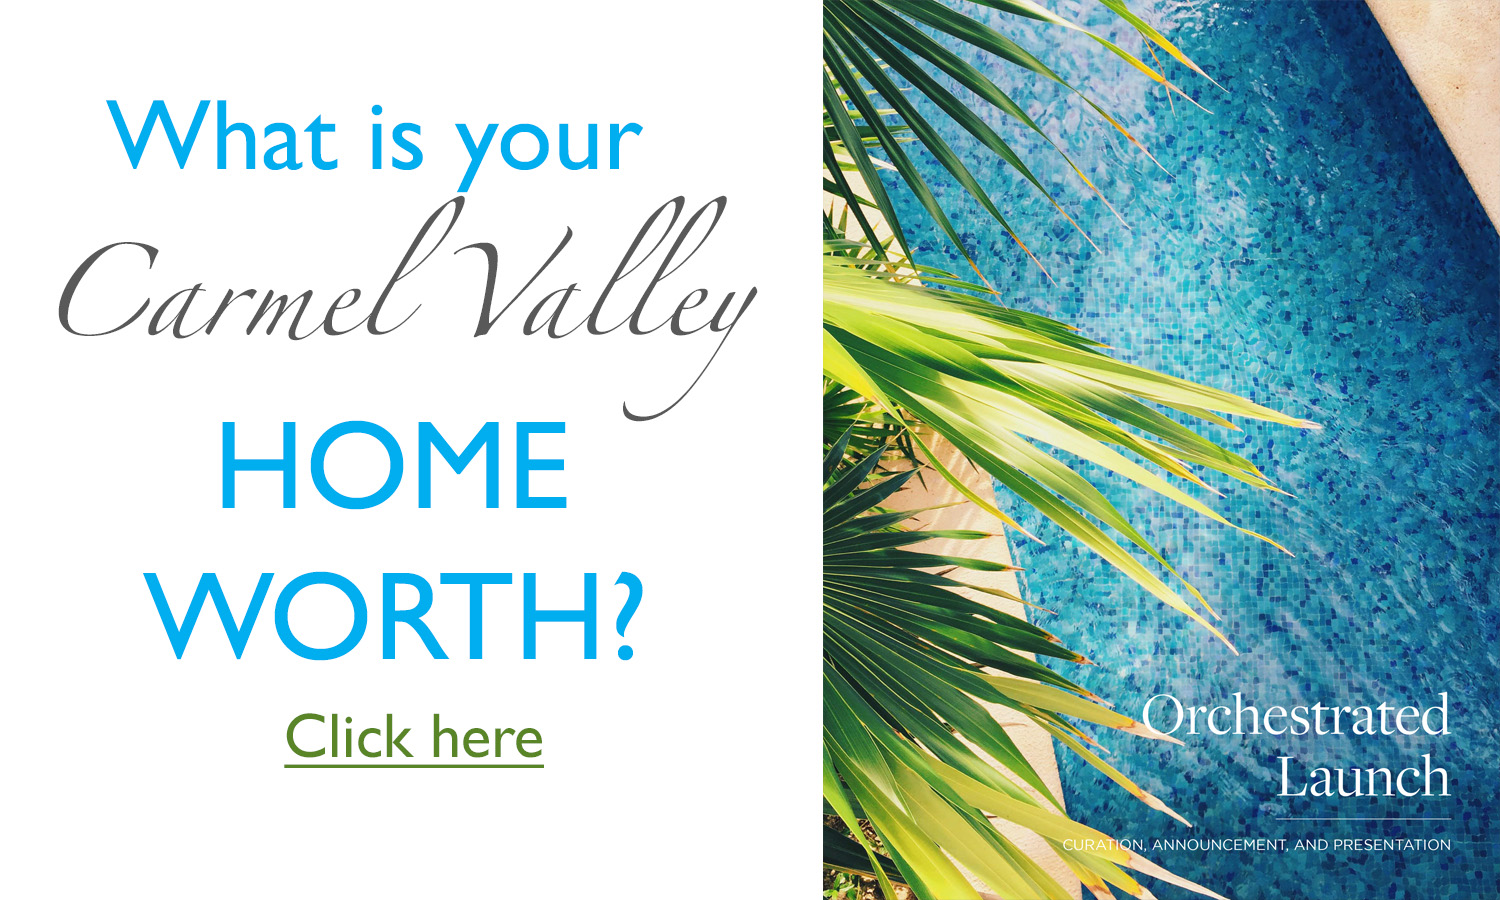 What is my home worth in Carmel Valley San Diego? Home Selling in Carmel Valley & Home Valuation